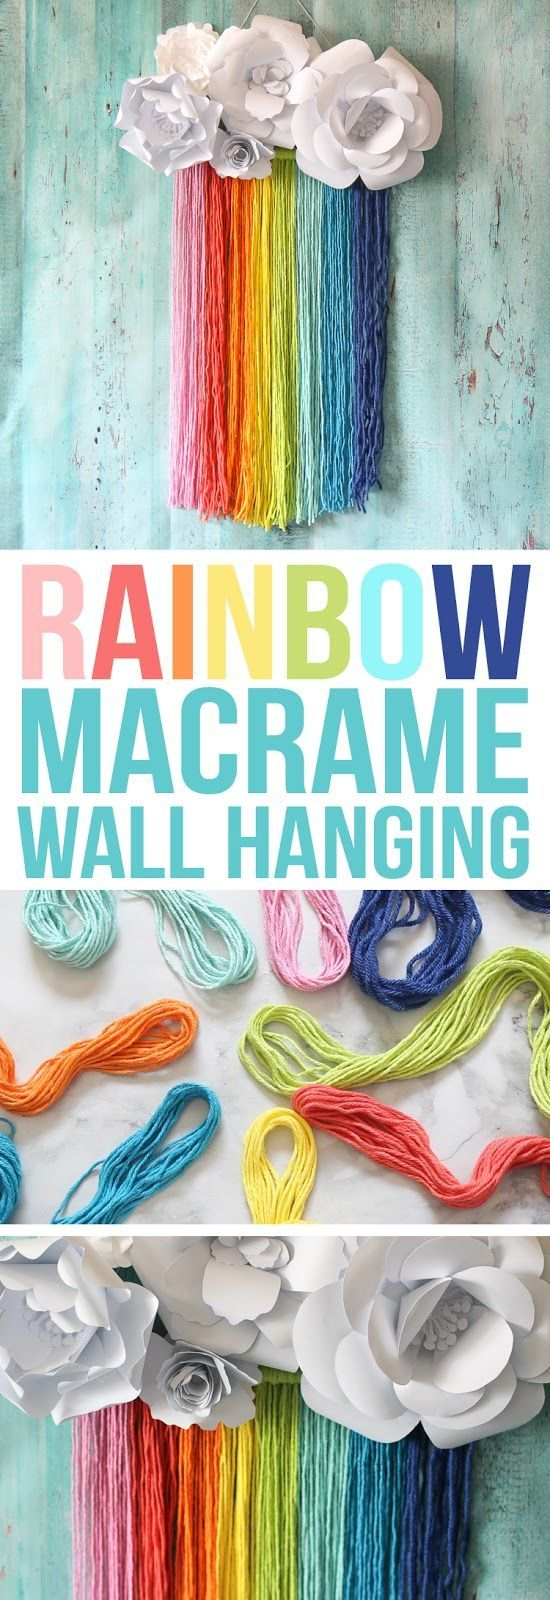 Rainbow Macrame Wall Hanging #rainbowcrafts